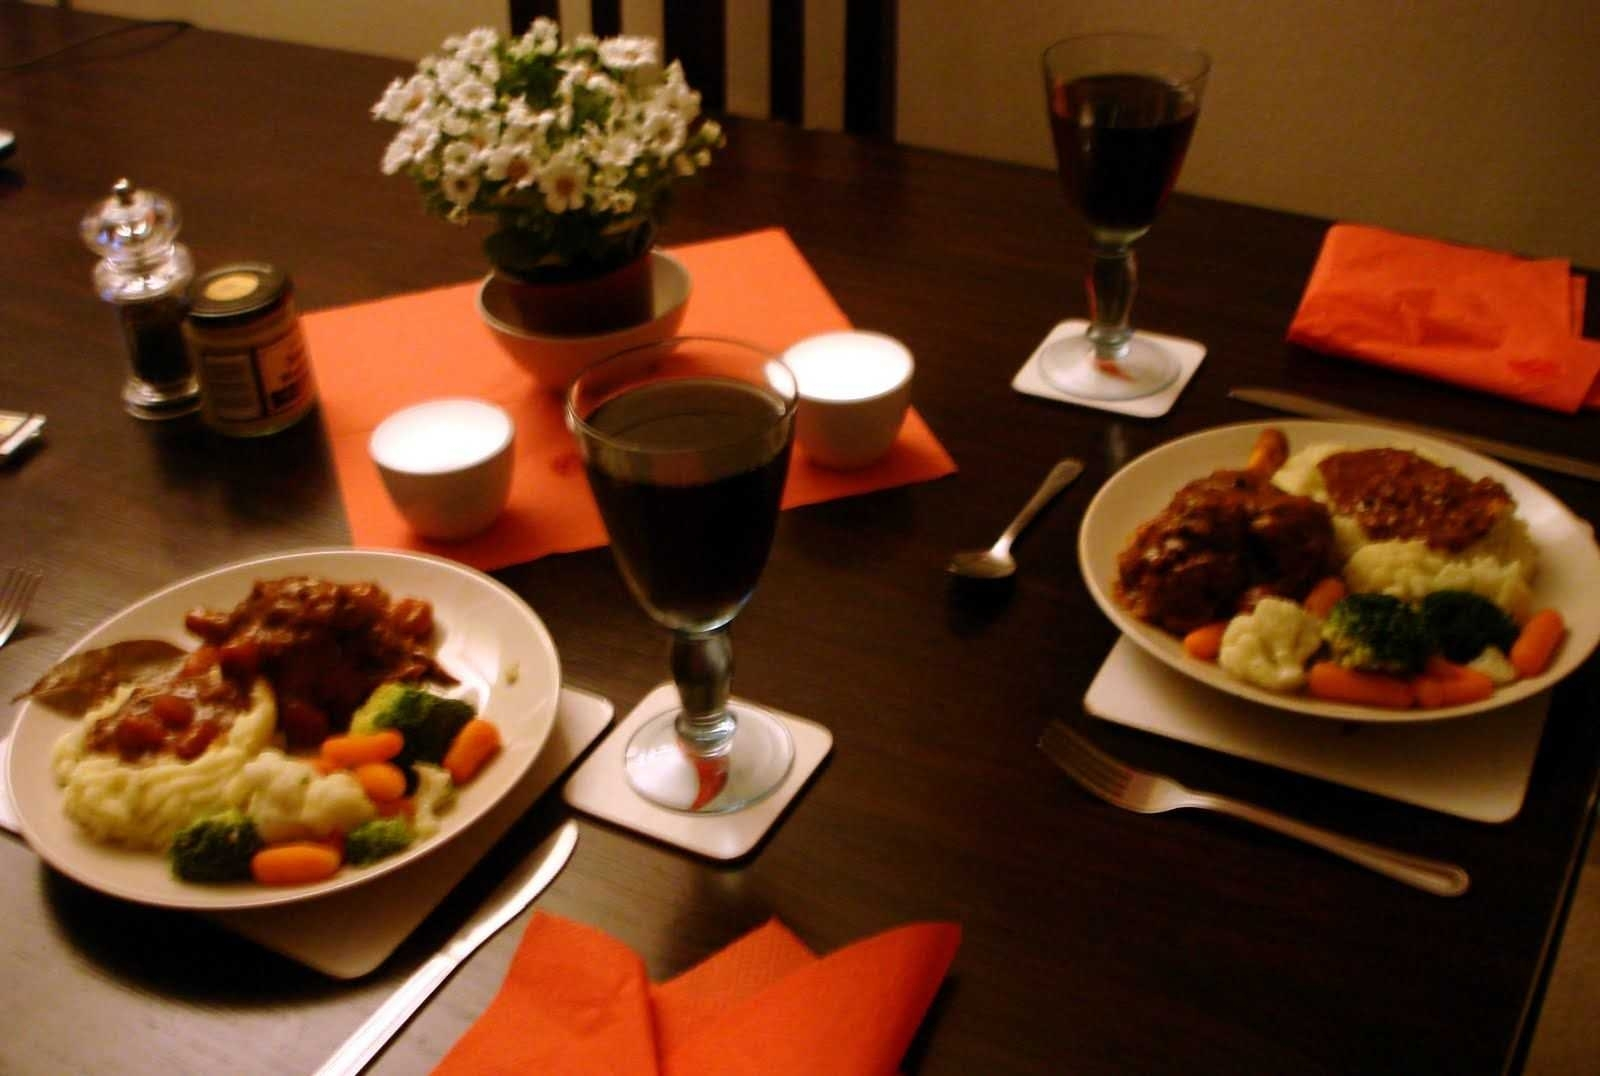 27 collection of romantic dinner ideas for two at home ideas